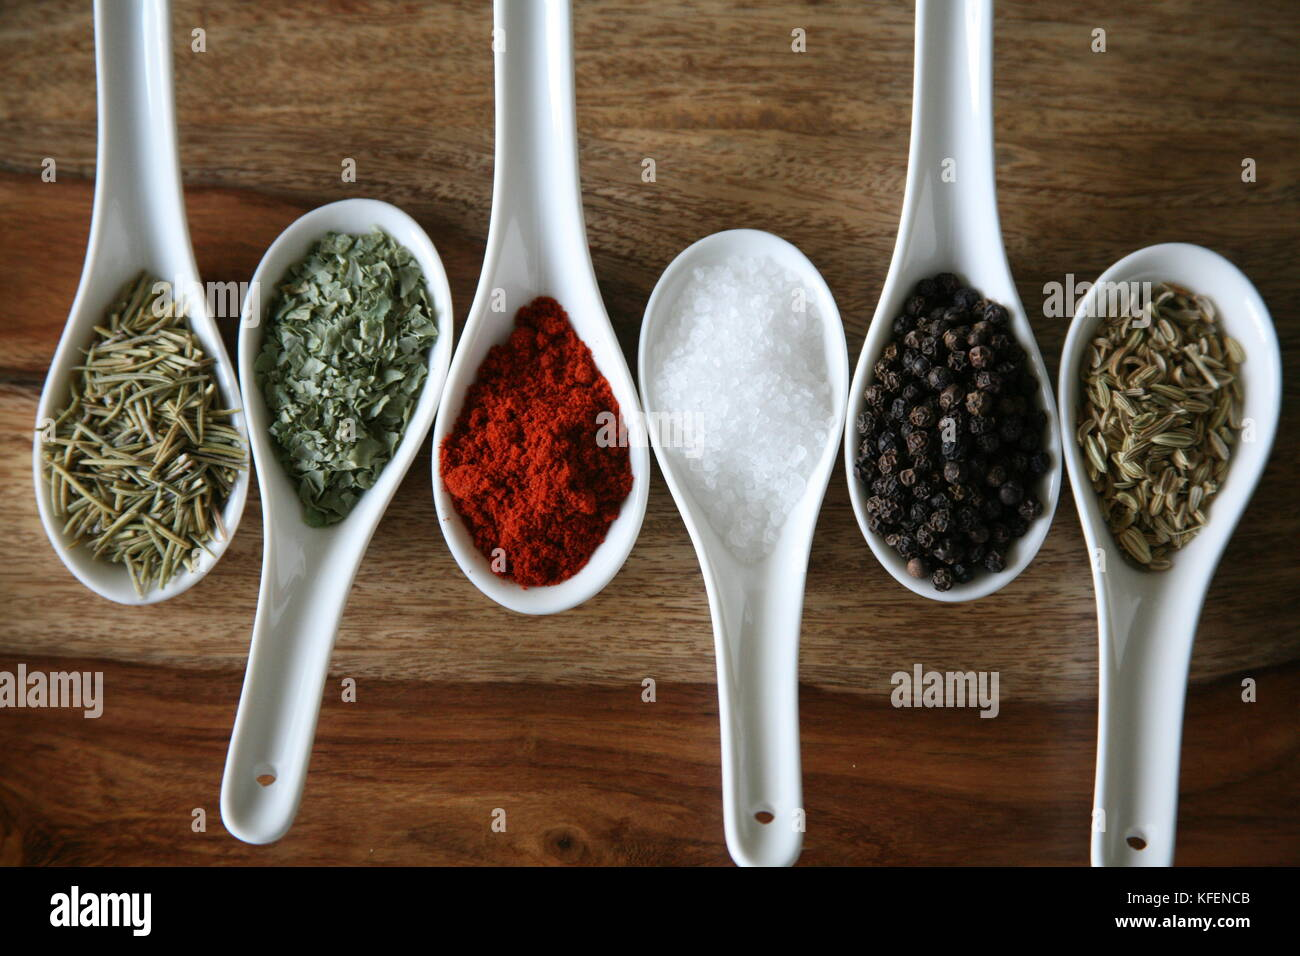 Chinese soup spoons filled with colourful spices - Stock Image